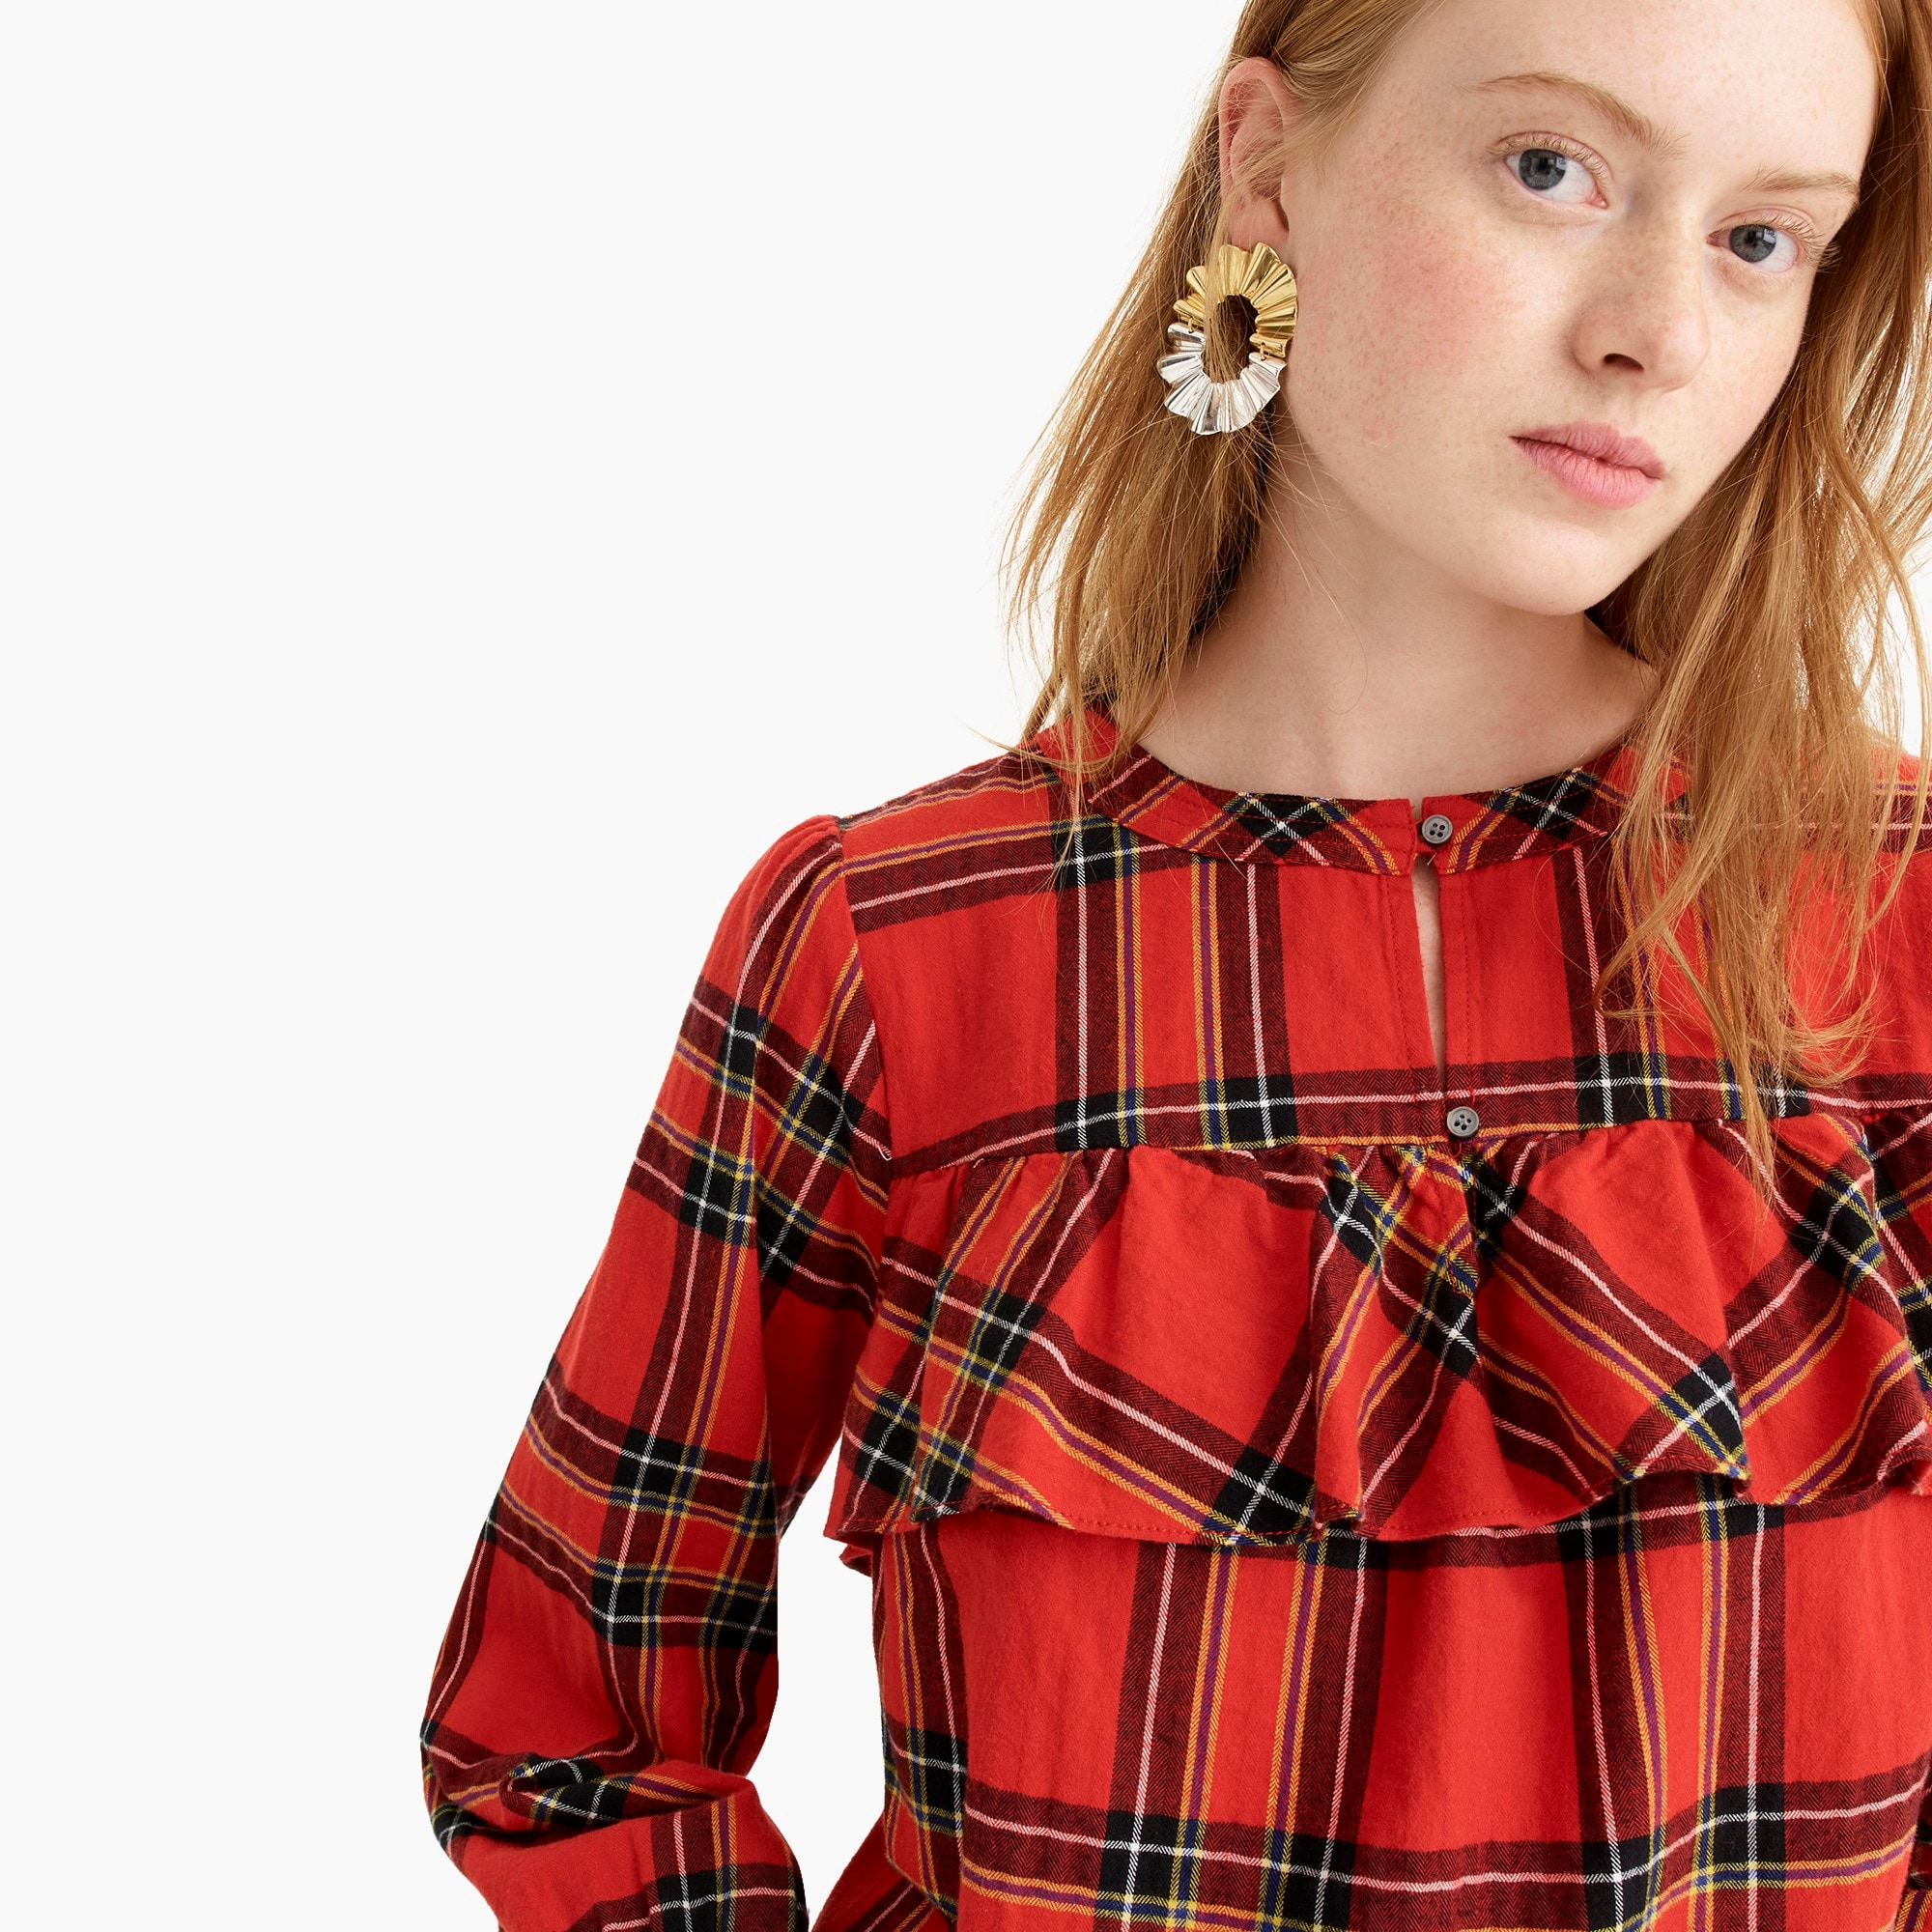 Petite ruffle top in festive plaid